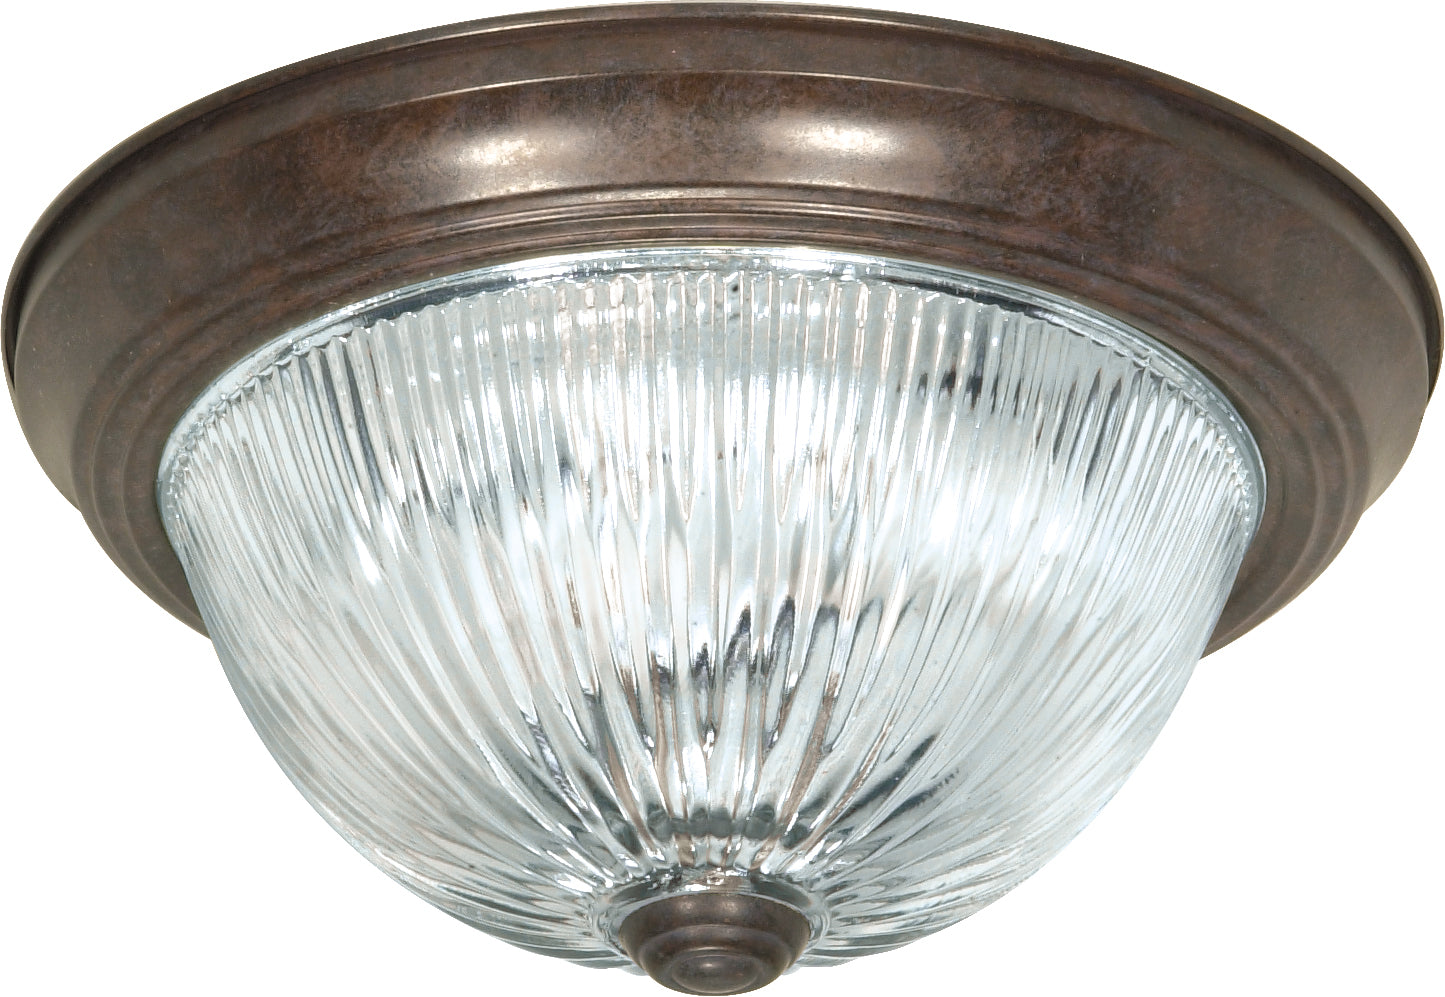 """Nuvo 2-Light 11"""" Ceiling Light w/ Clear Ribbed Glass in Old Bronze Finish"""